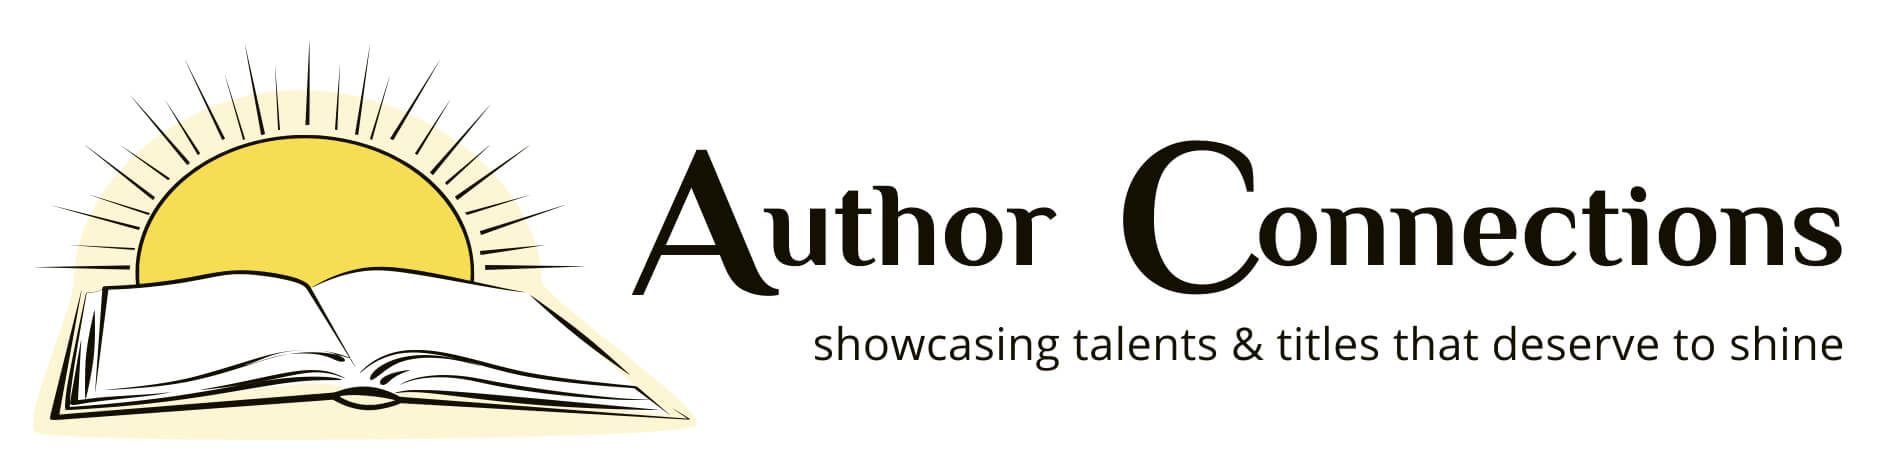 Logo- Author Connections. with sun and open book to the left of words